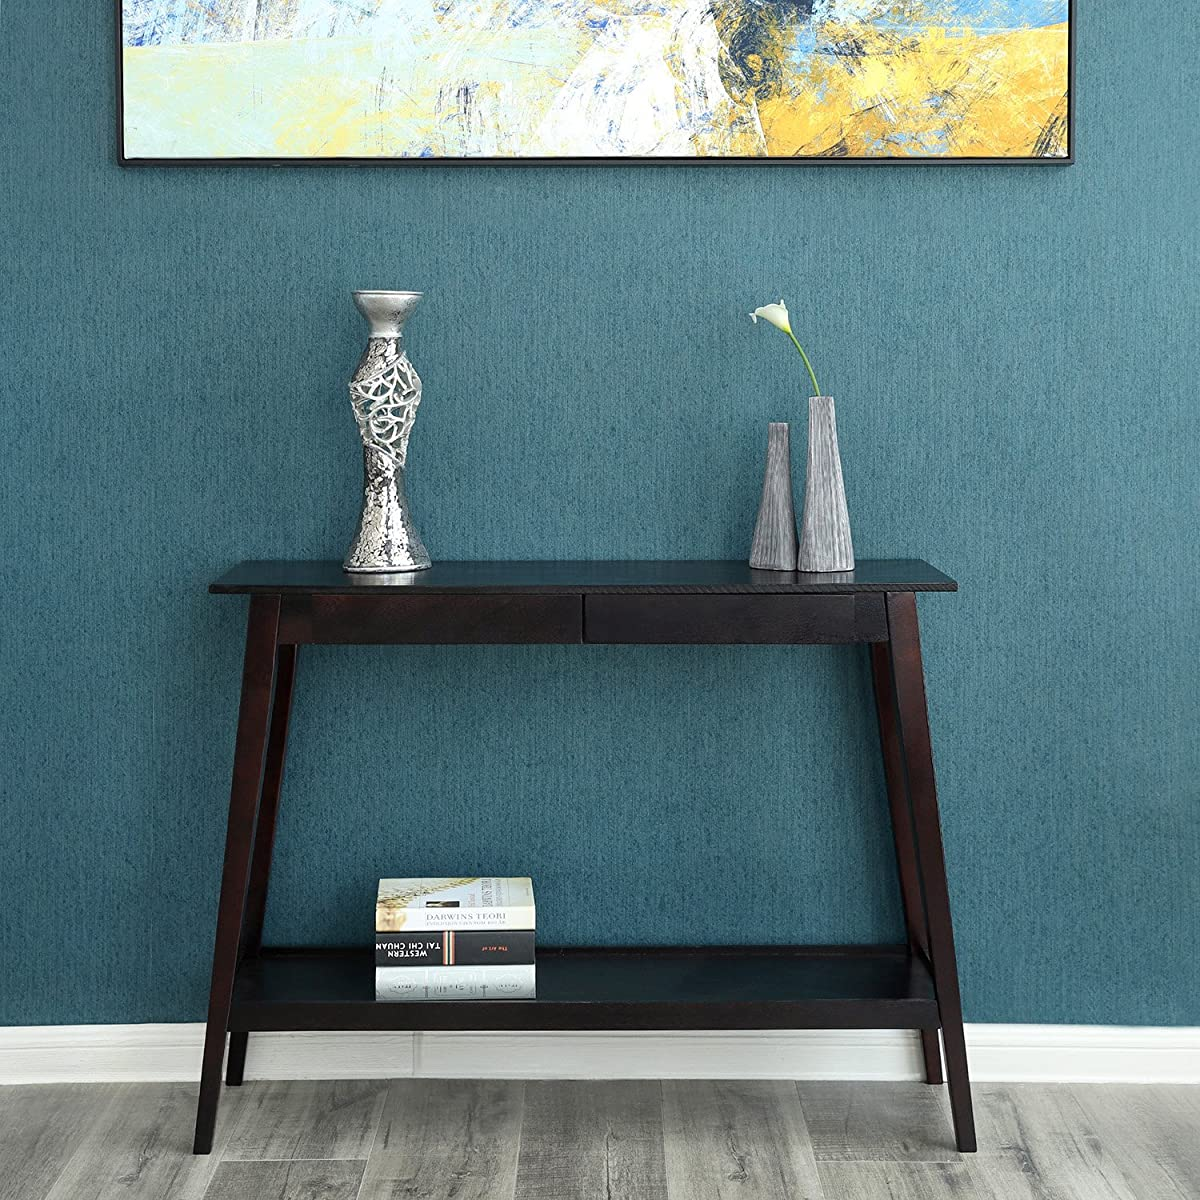 SONGMICS Wood Console Sofa Table and BookShelf with Sliding Drawers and Storage Shelves for Entryway, Living Room, Walnut Color ULCT01WN